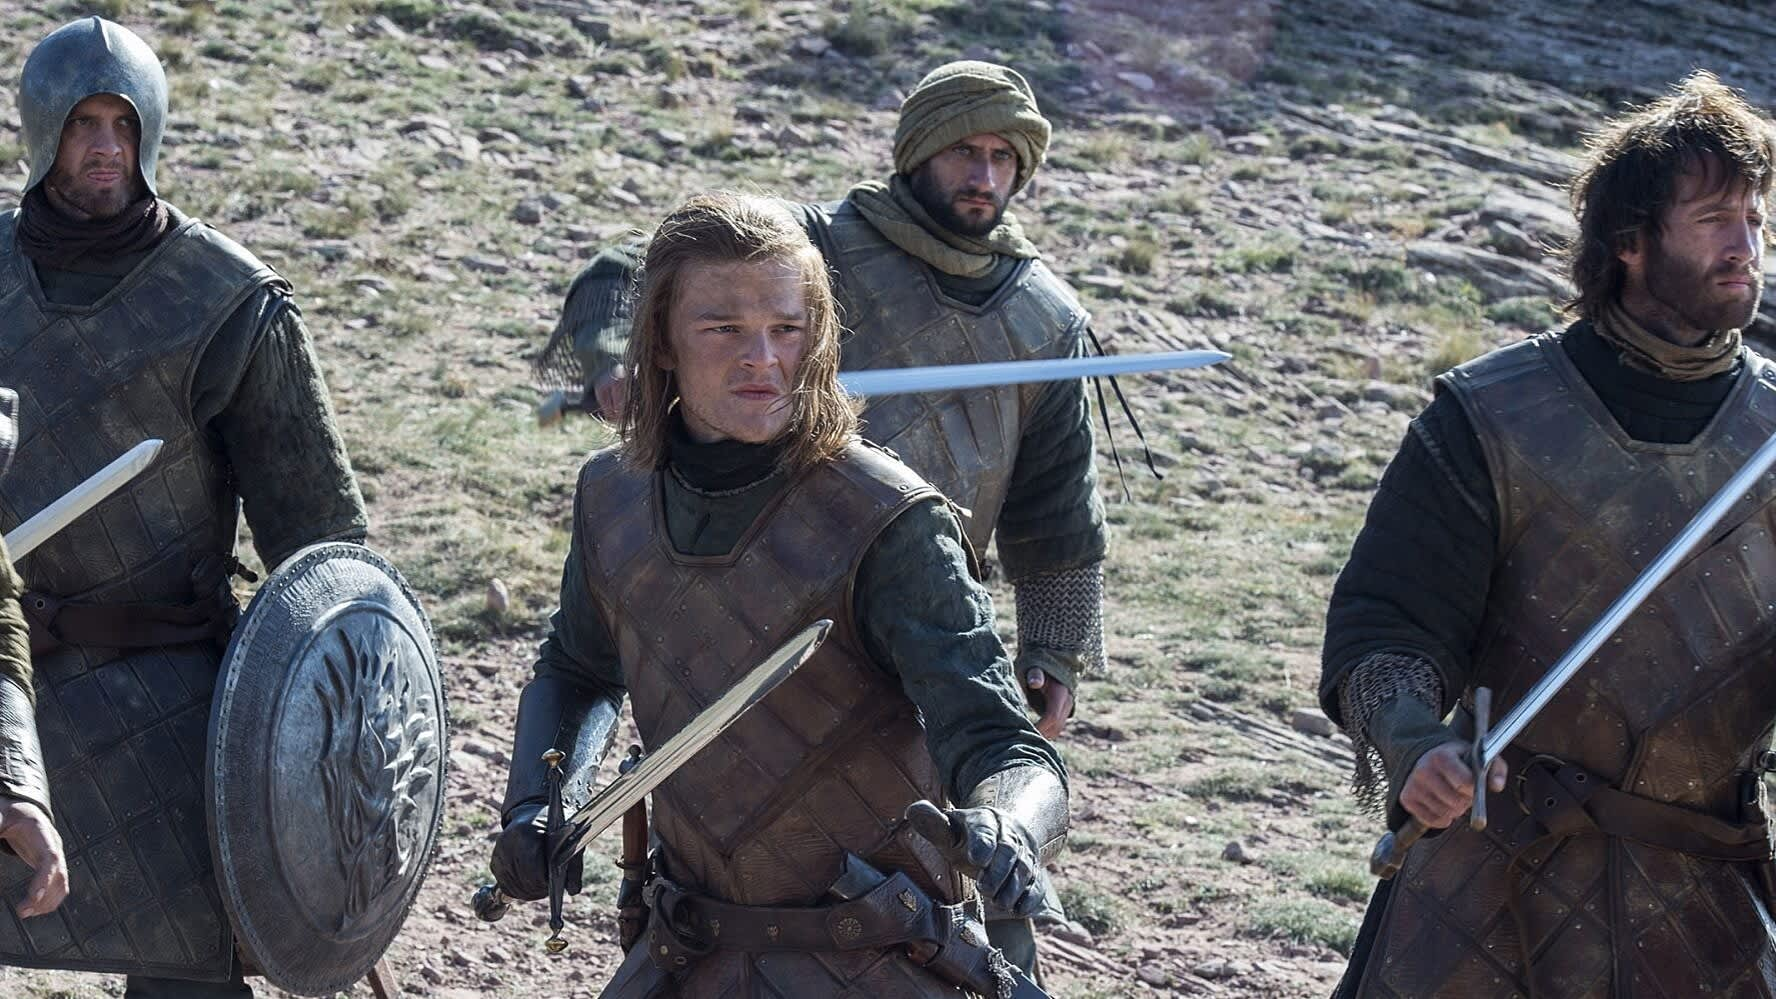 WarnerMedia plans to charge $9.99 per month for ad-supported HBO Max – CNBC